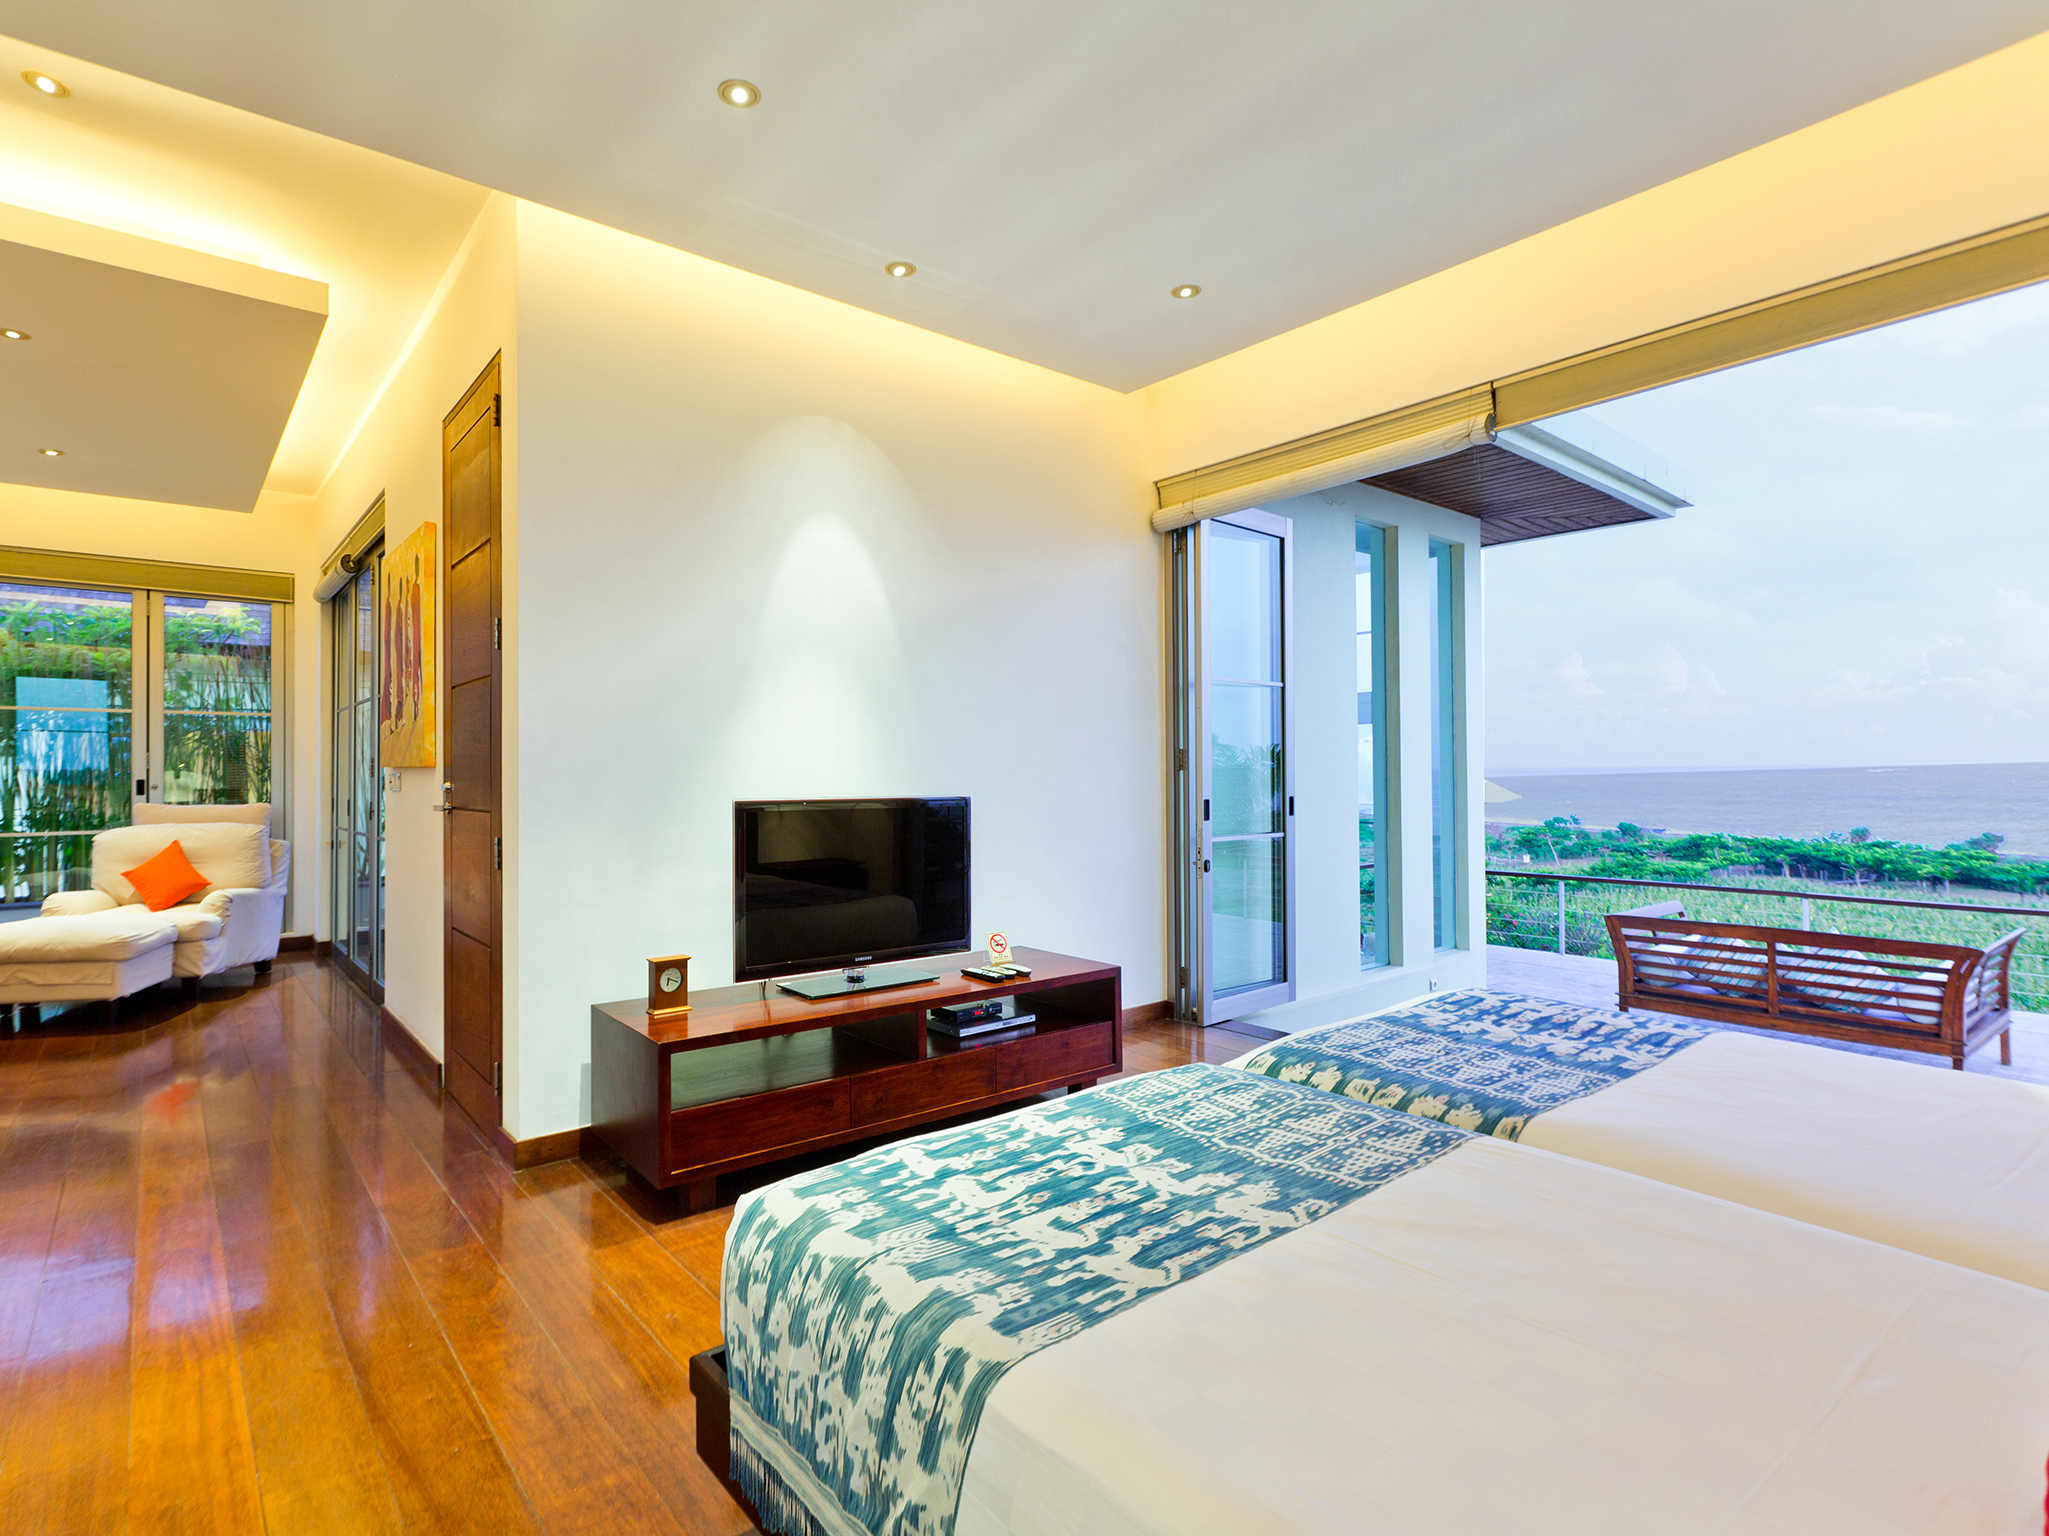 Sanur Residence - Villa 2 - Master bedroom with ricefield & ocean view - Sanur Residence, Sanur-Ketewel, Bali